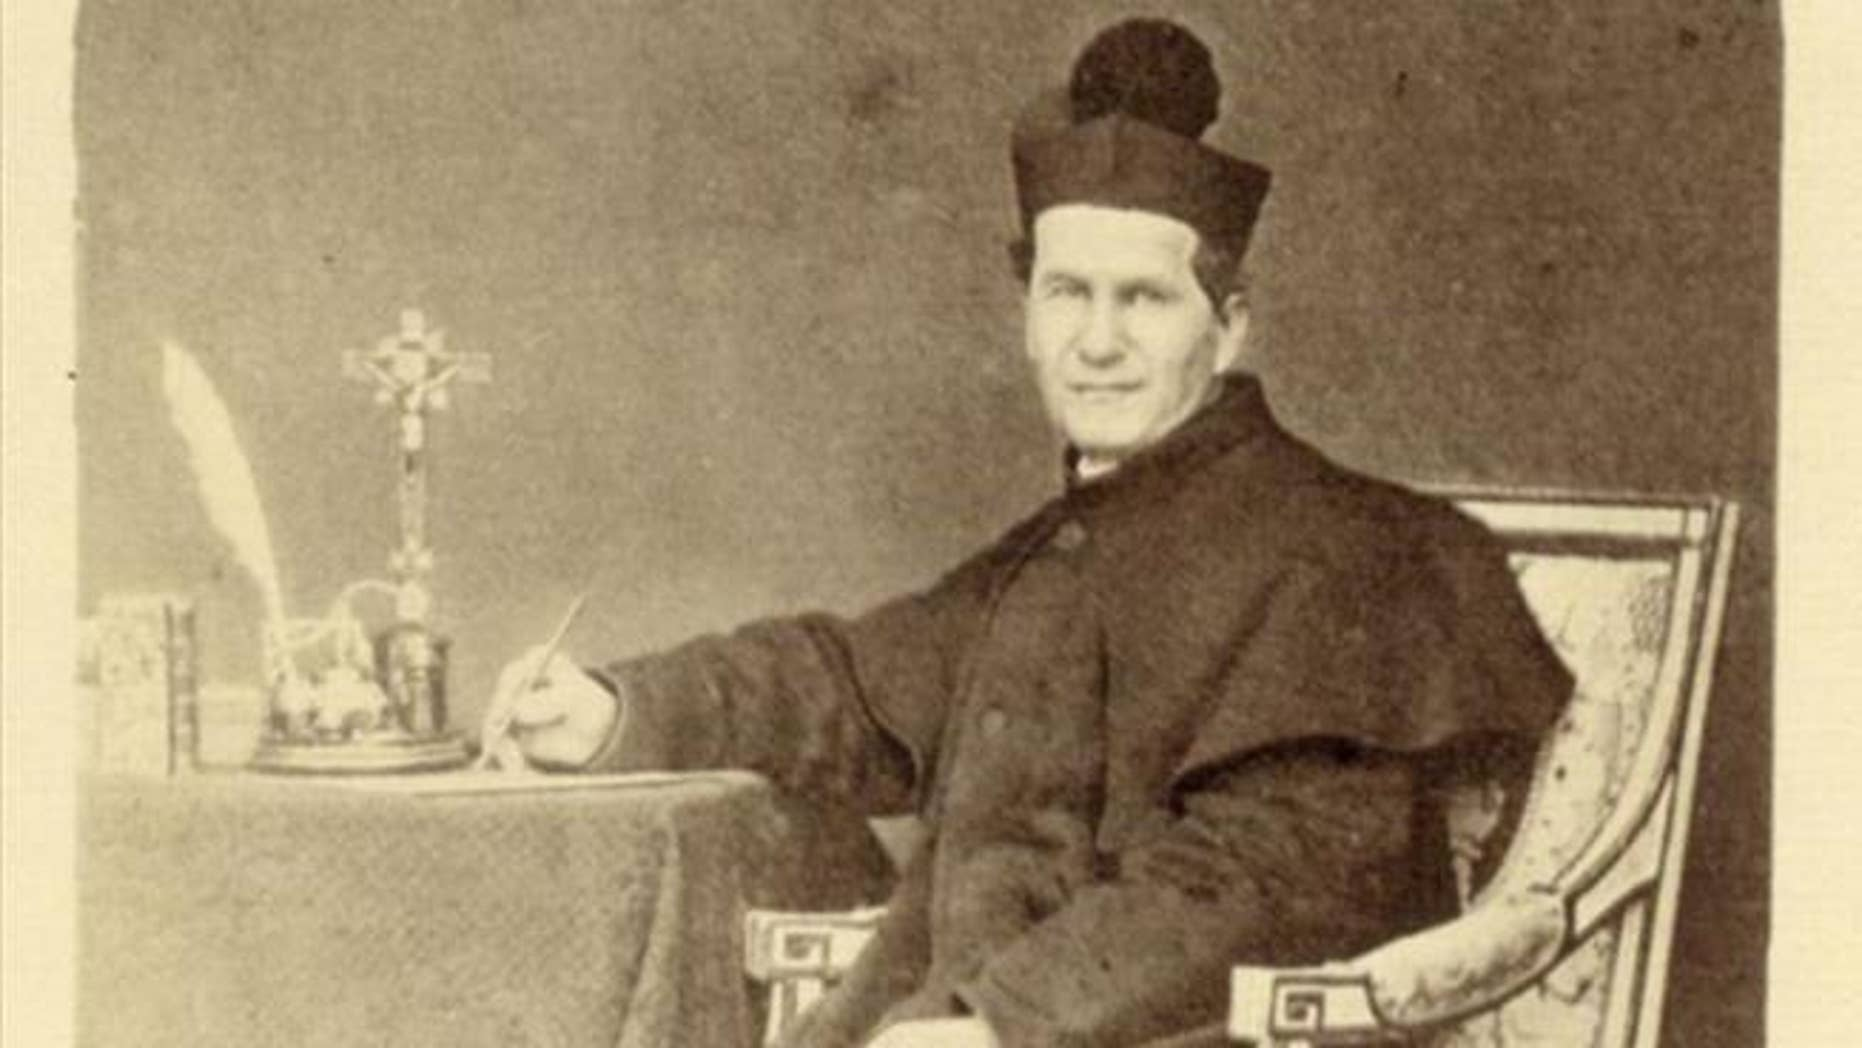 The relic of St. John Bosco, pictured here, was stolen from a church in Castelnuovo, Italy.